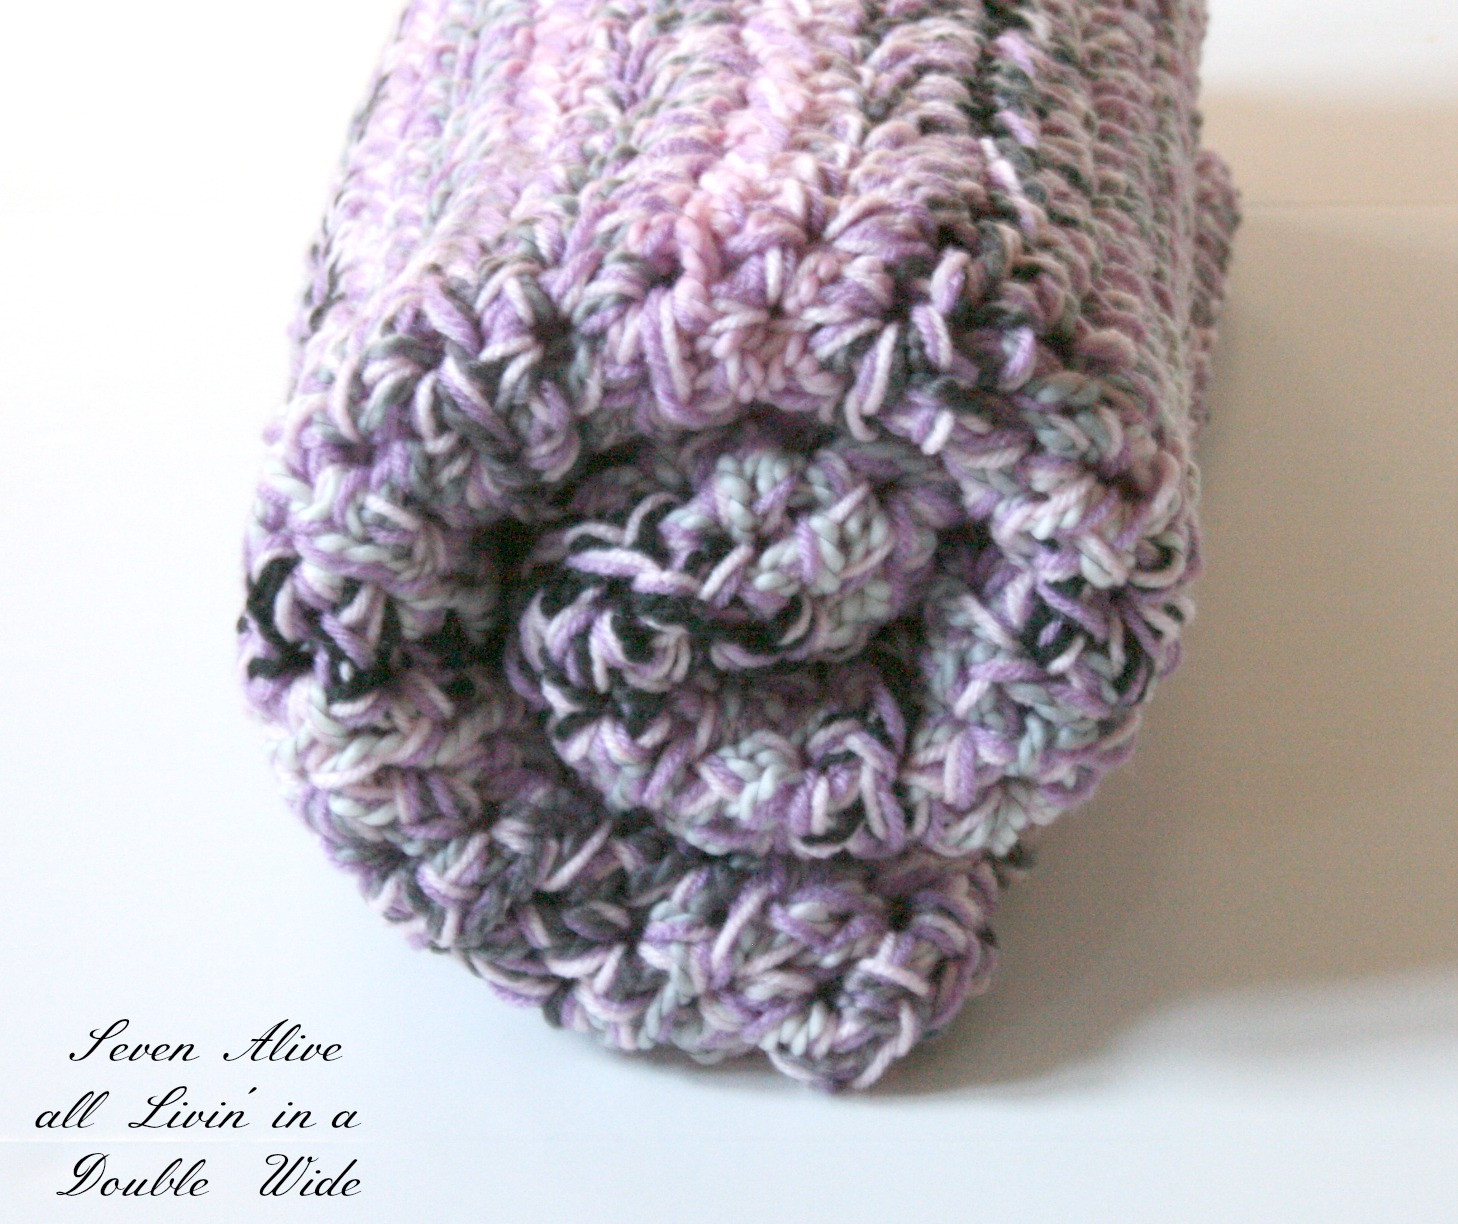 Chunky Yarn Patterns Awesome Crochet Afghan Pattern for Chunky Yarn Dancox for Of Adorable 41 Photos Chunky Yarn Patterns